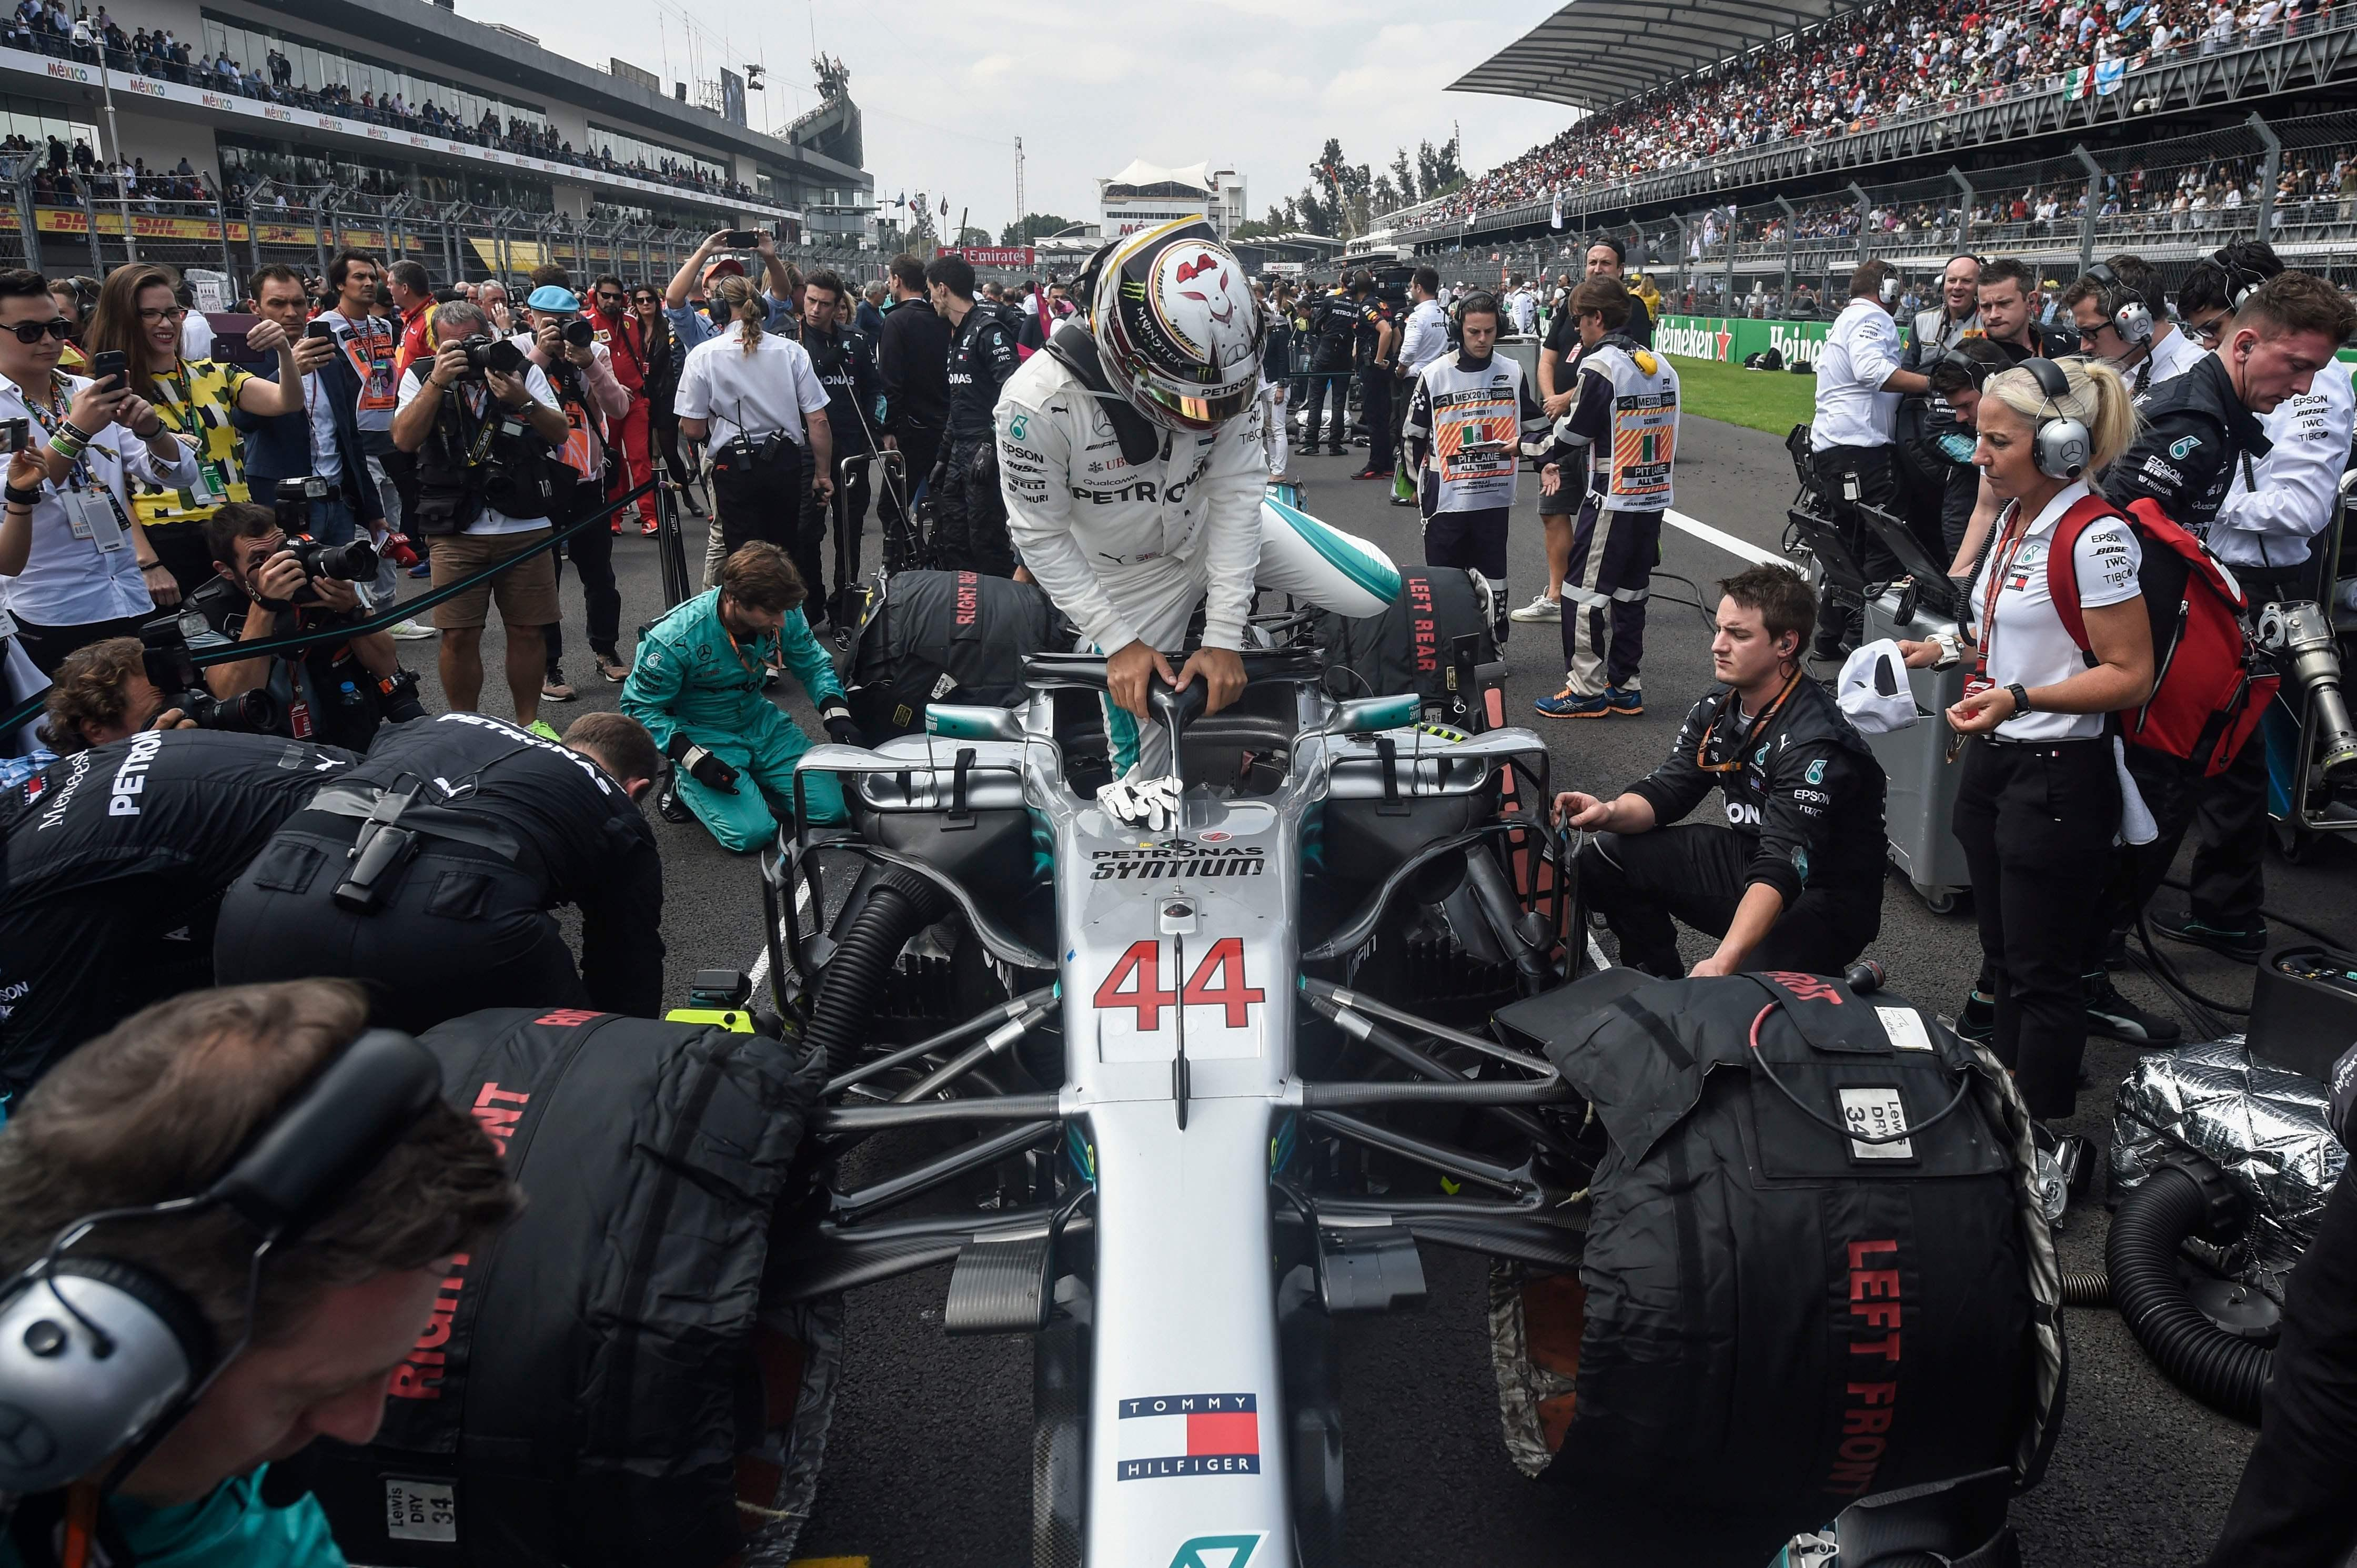 Hamilton is just two titles away from equalling Schumacher's record